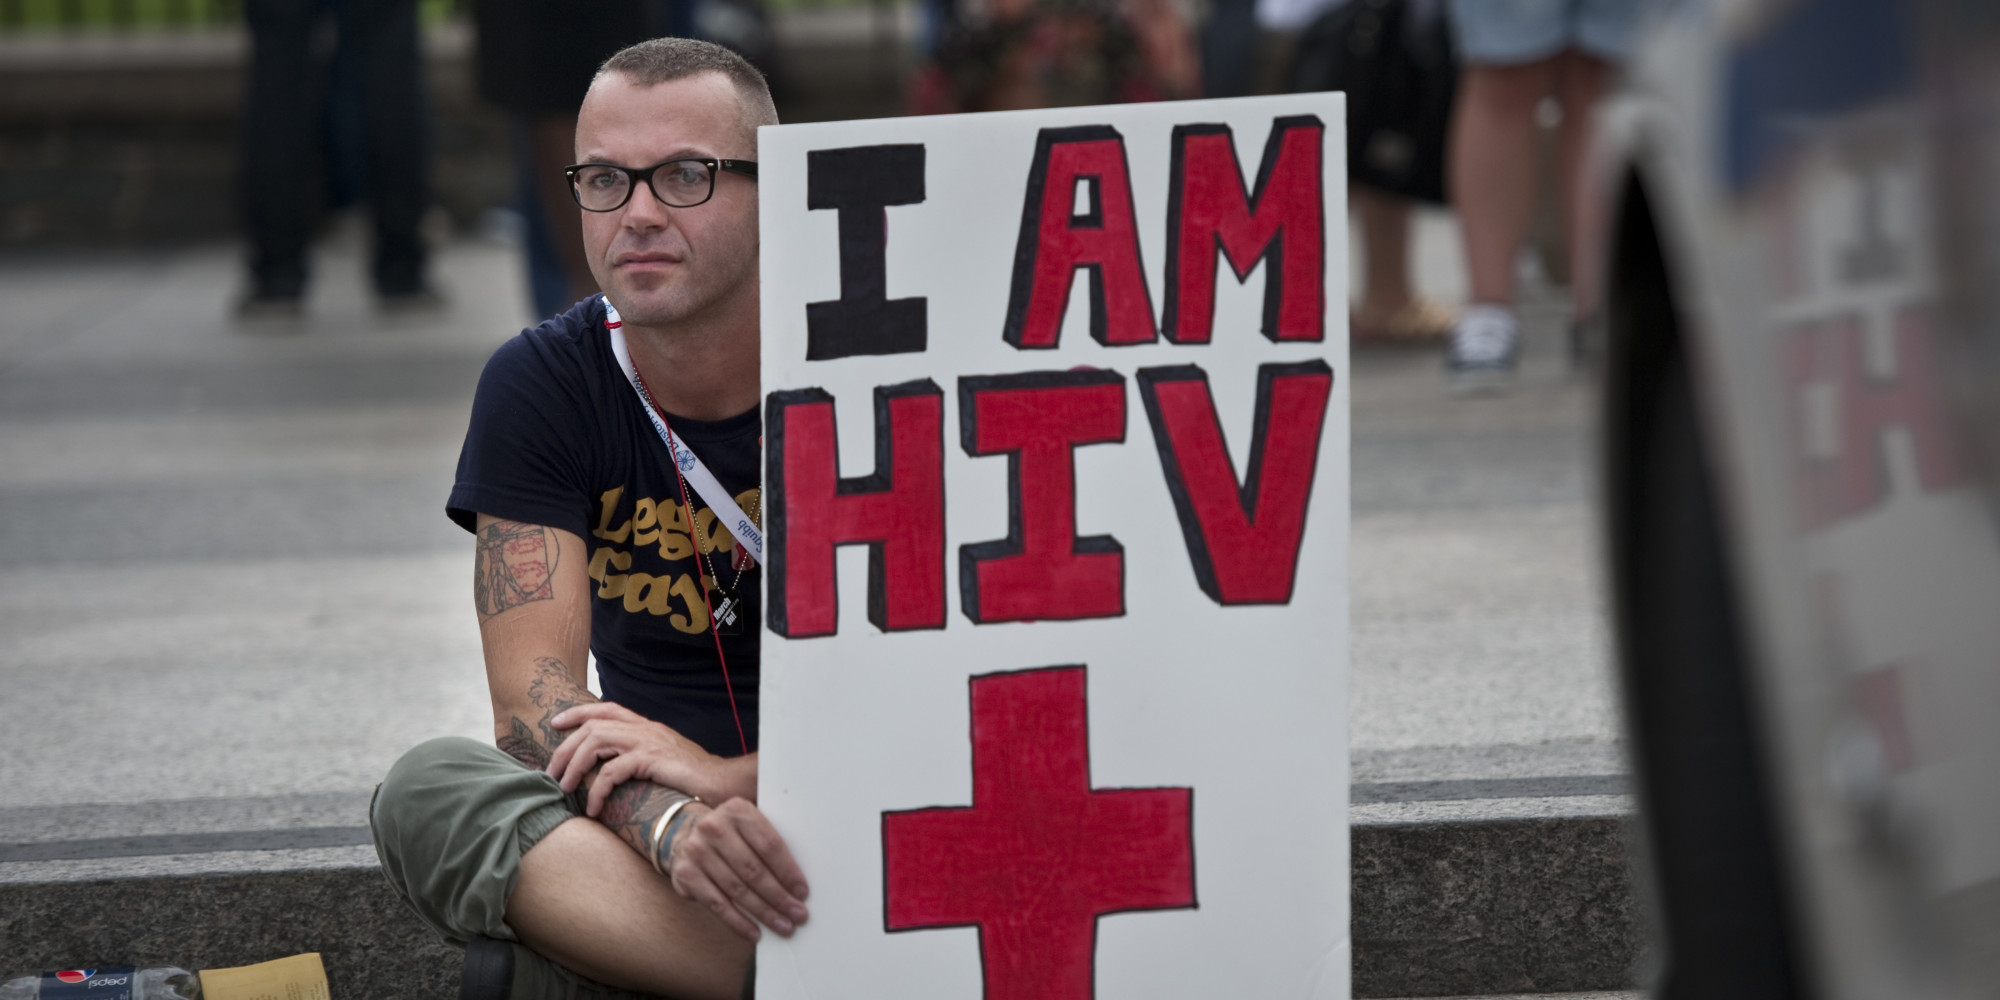 What Happens If I Am Hiv Positive